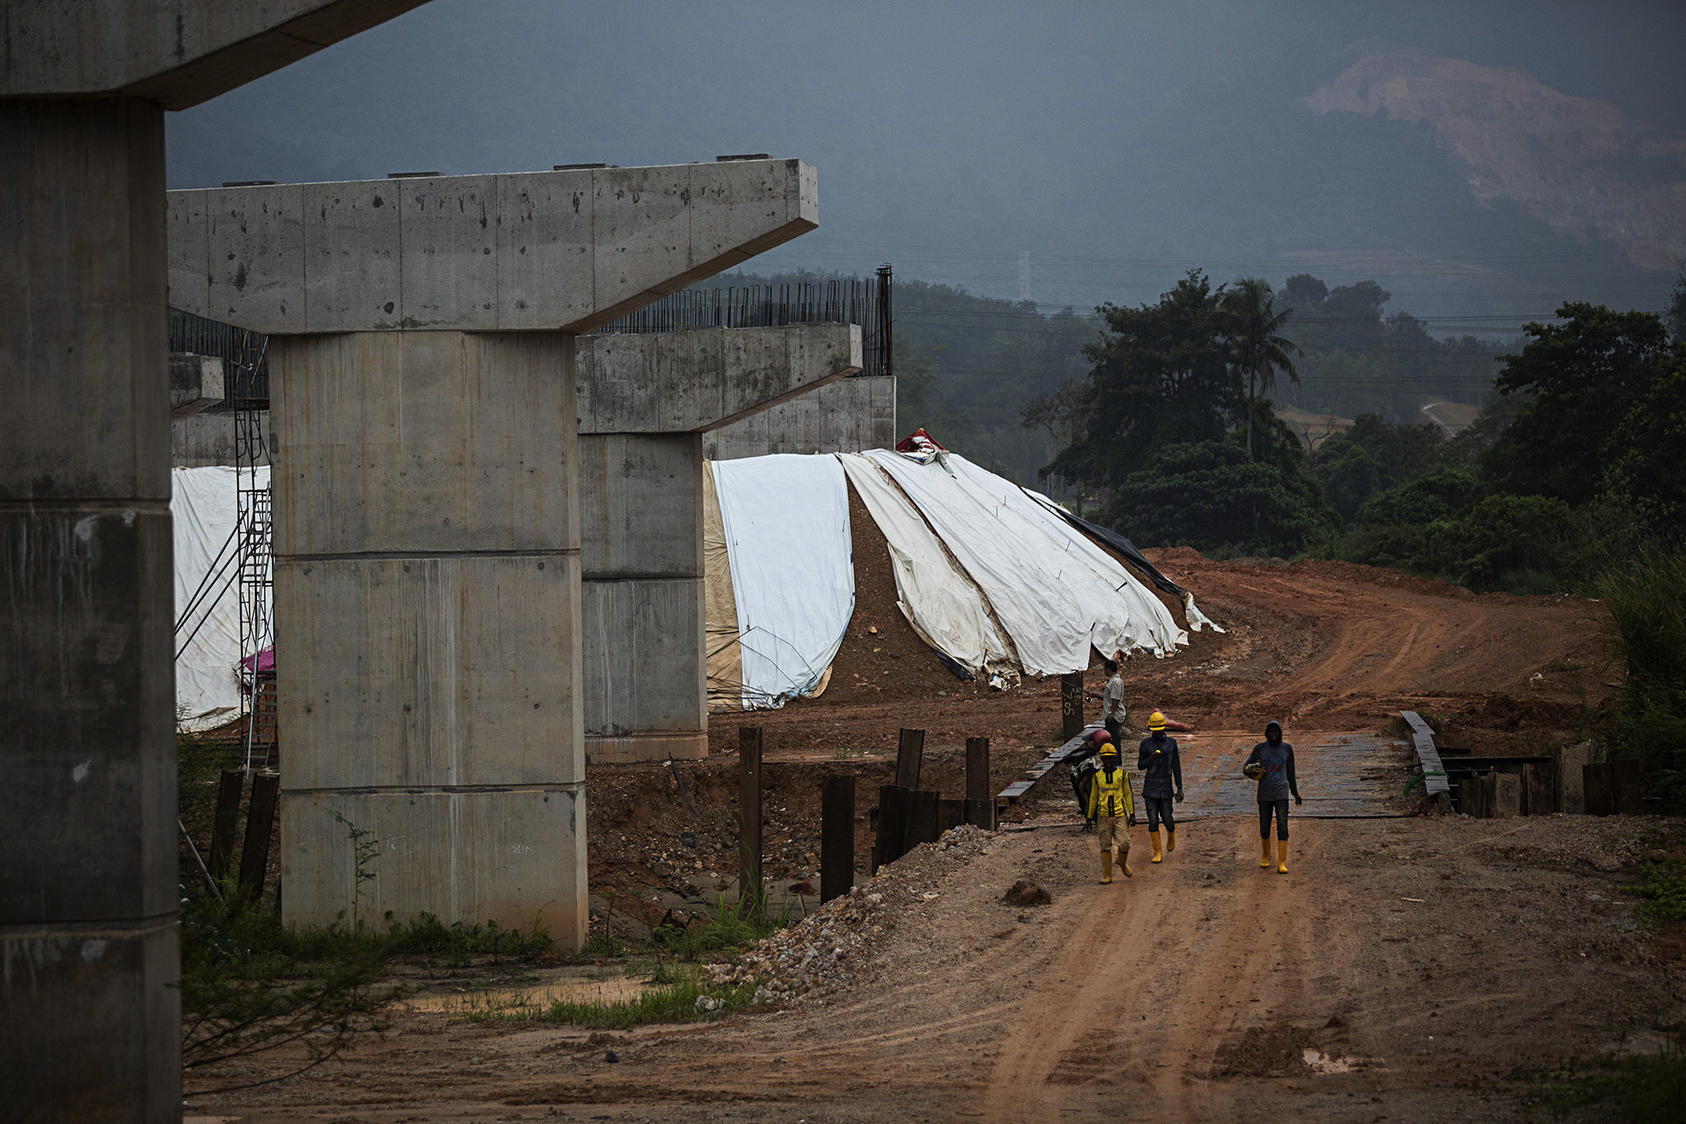 Construction on the East Coast Rail Link project, part of China's Belt and Road Initiative, in Bentong, Malaysia, Nov. 17, 2018. (New York Times)